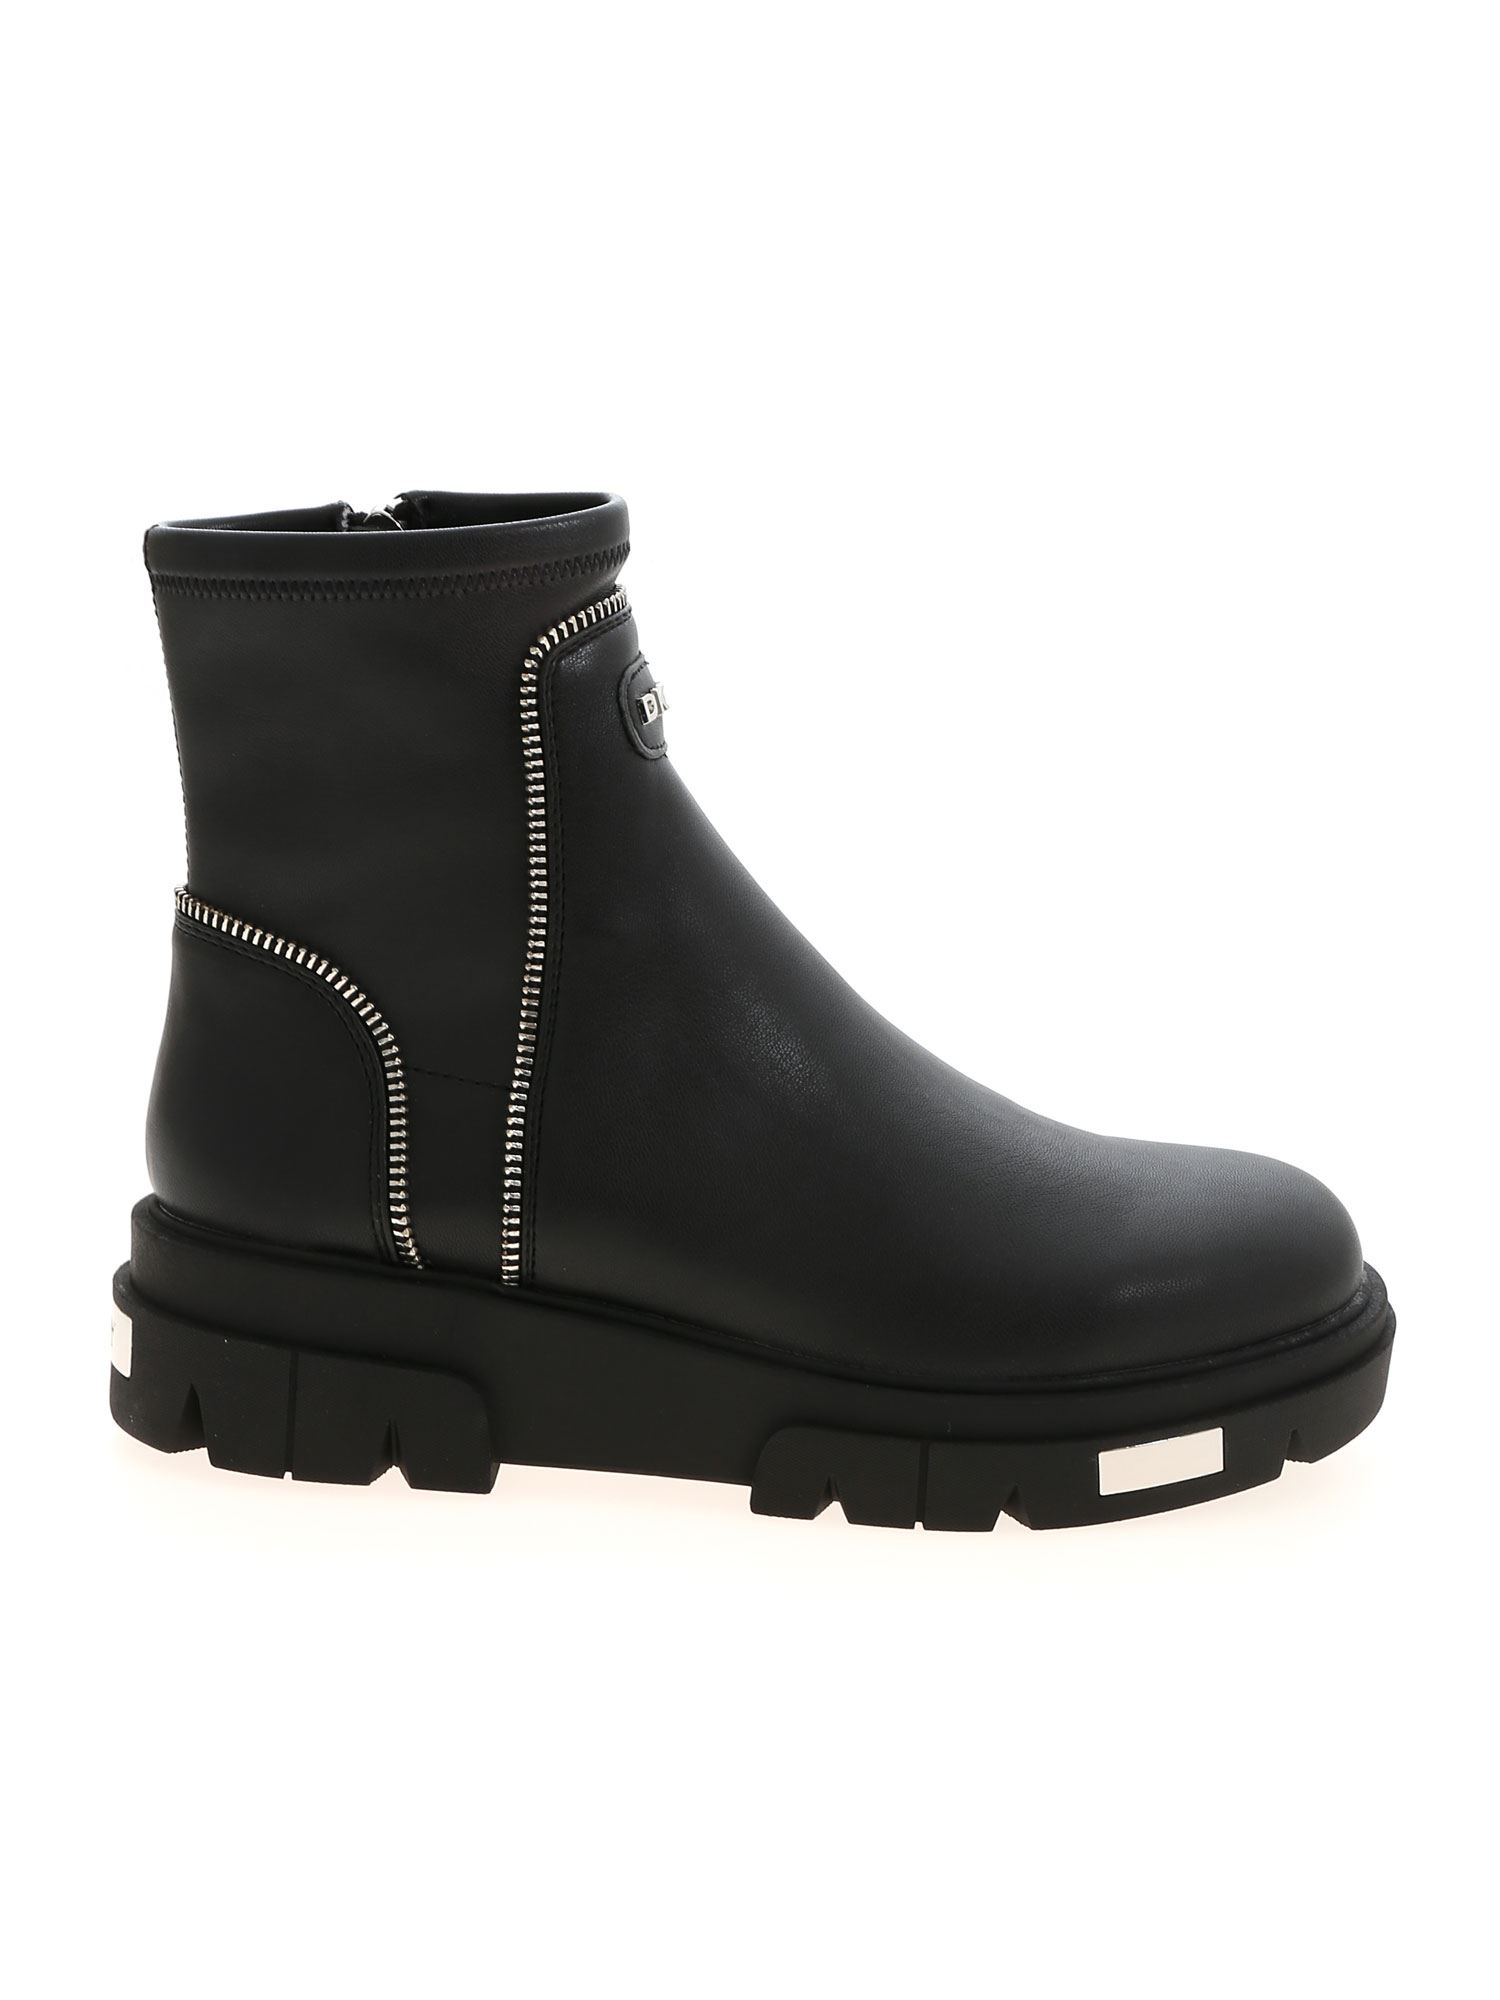 Dkny LIZZI ANKLE BOOTS IN BLACK